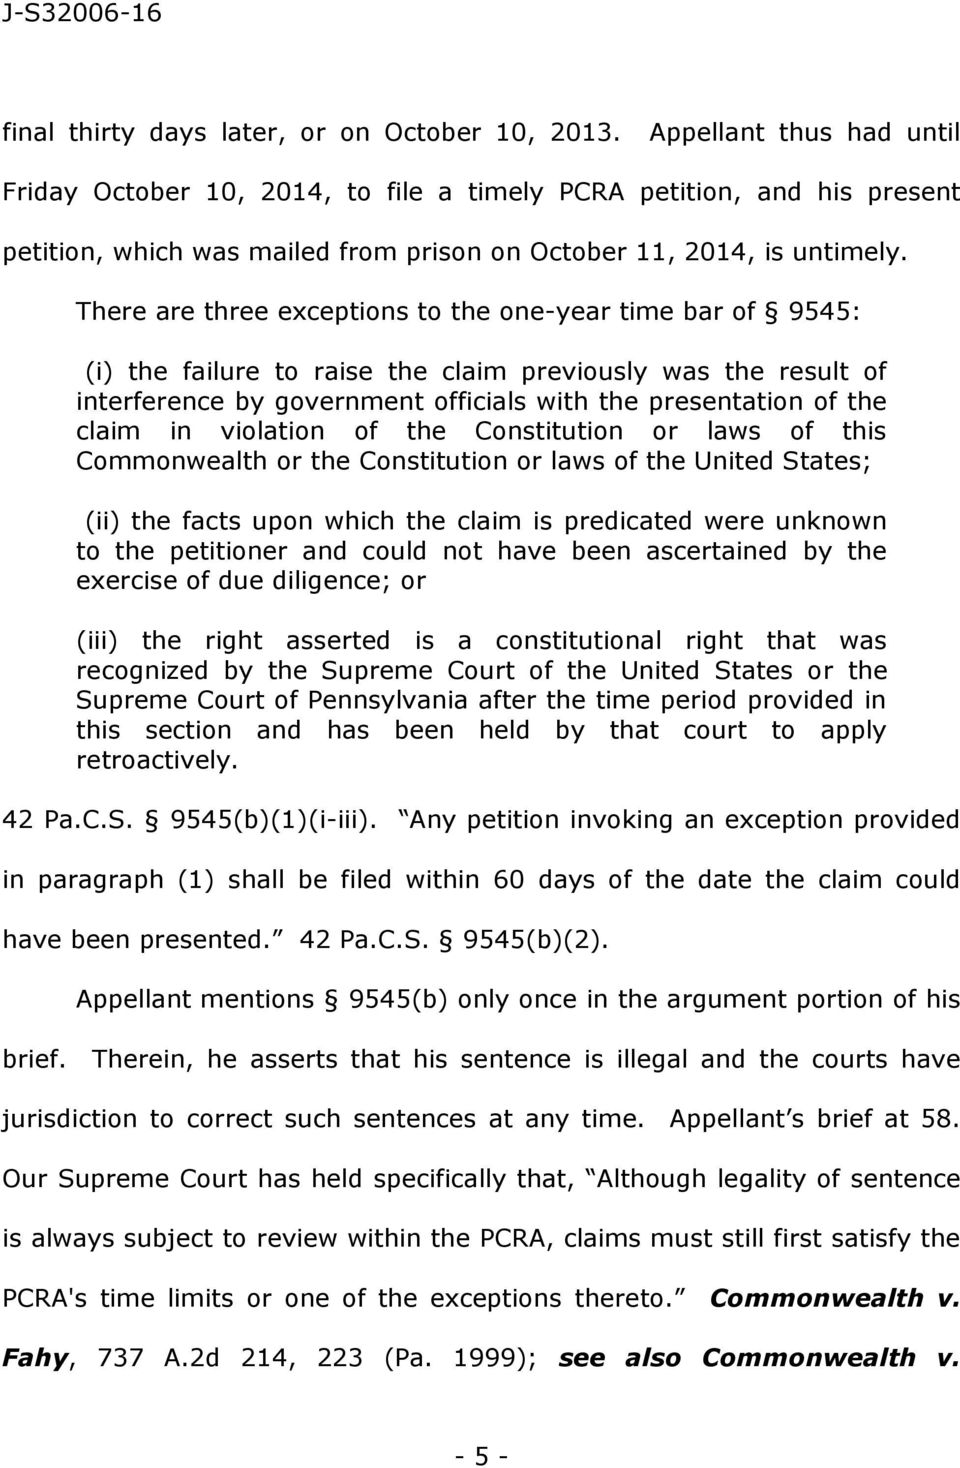 There are three exceptions to the one-year time bar of 9545: (i) the failure to raise the claim previously was the result of interference by government officials with the presentation of the claim in